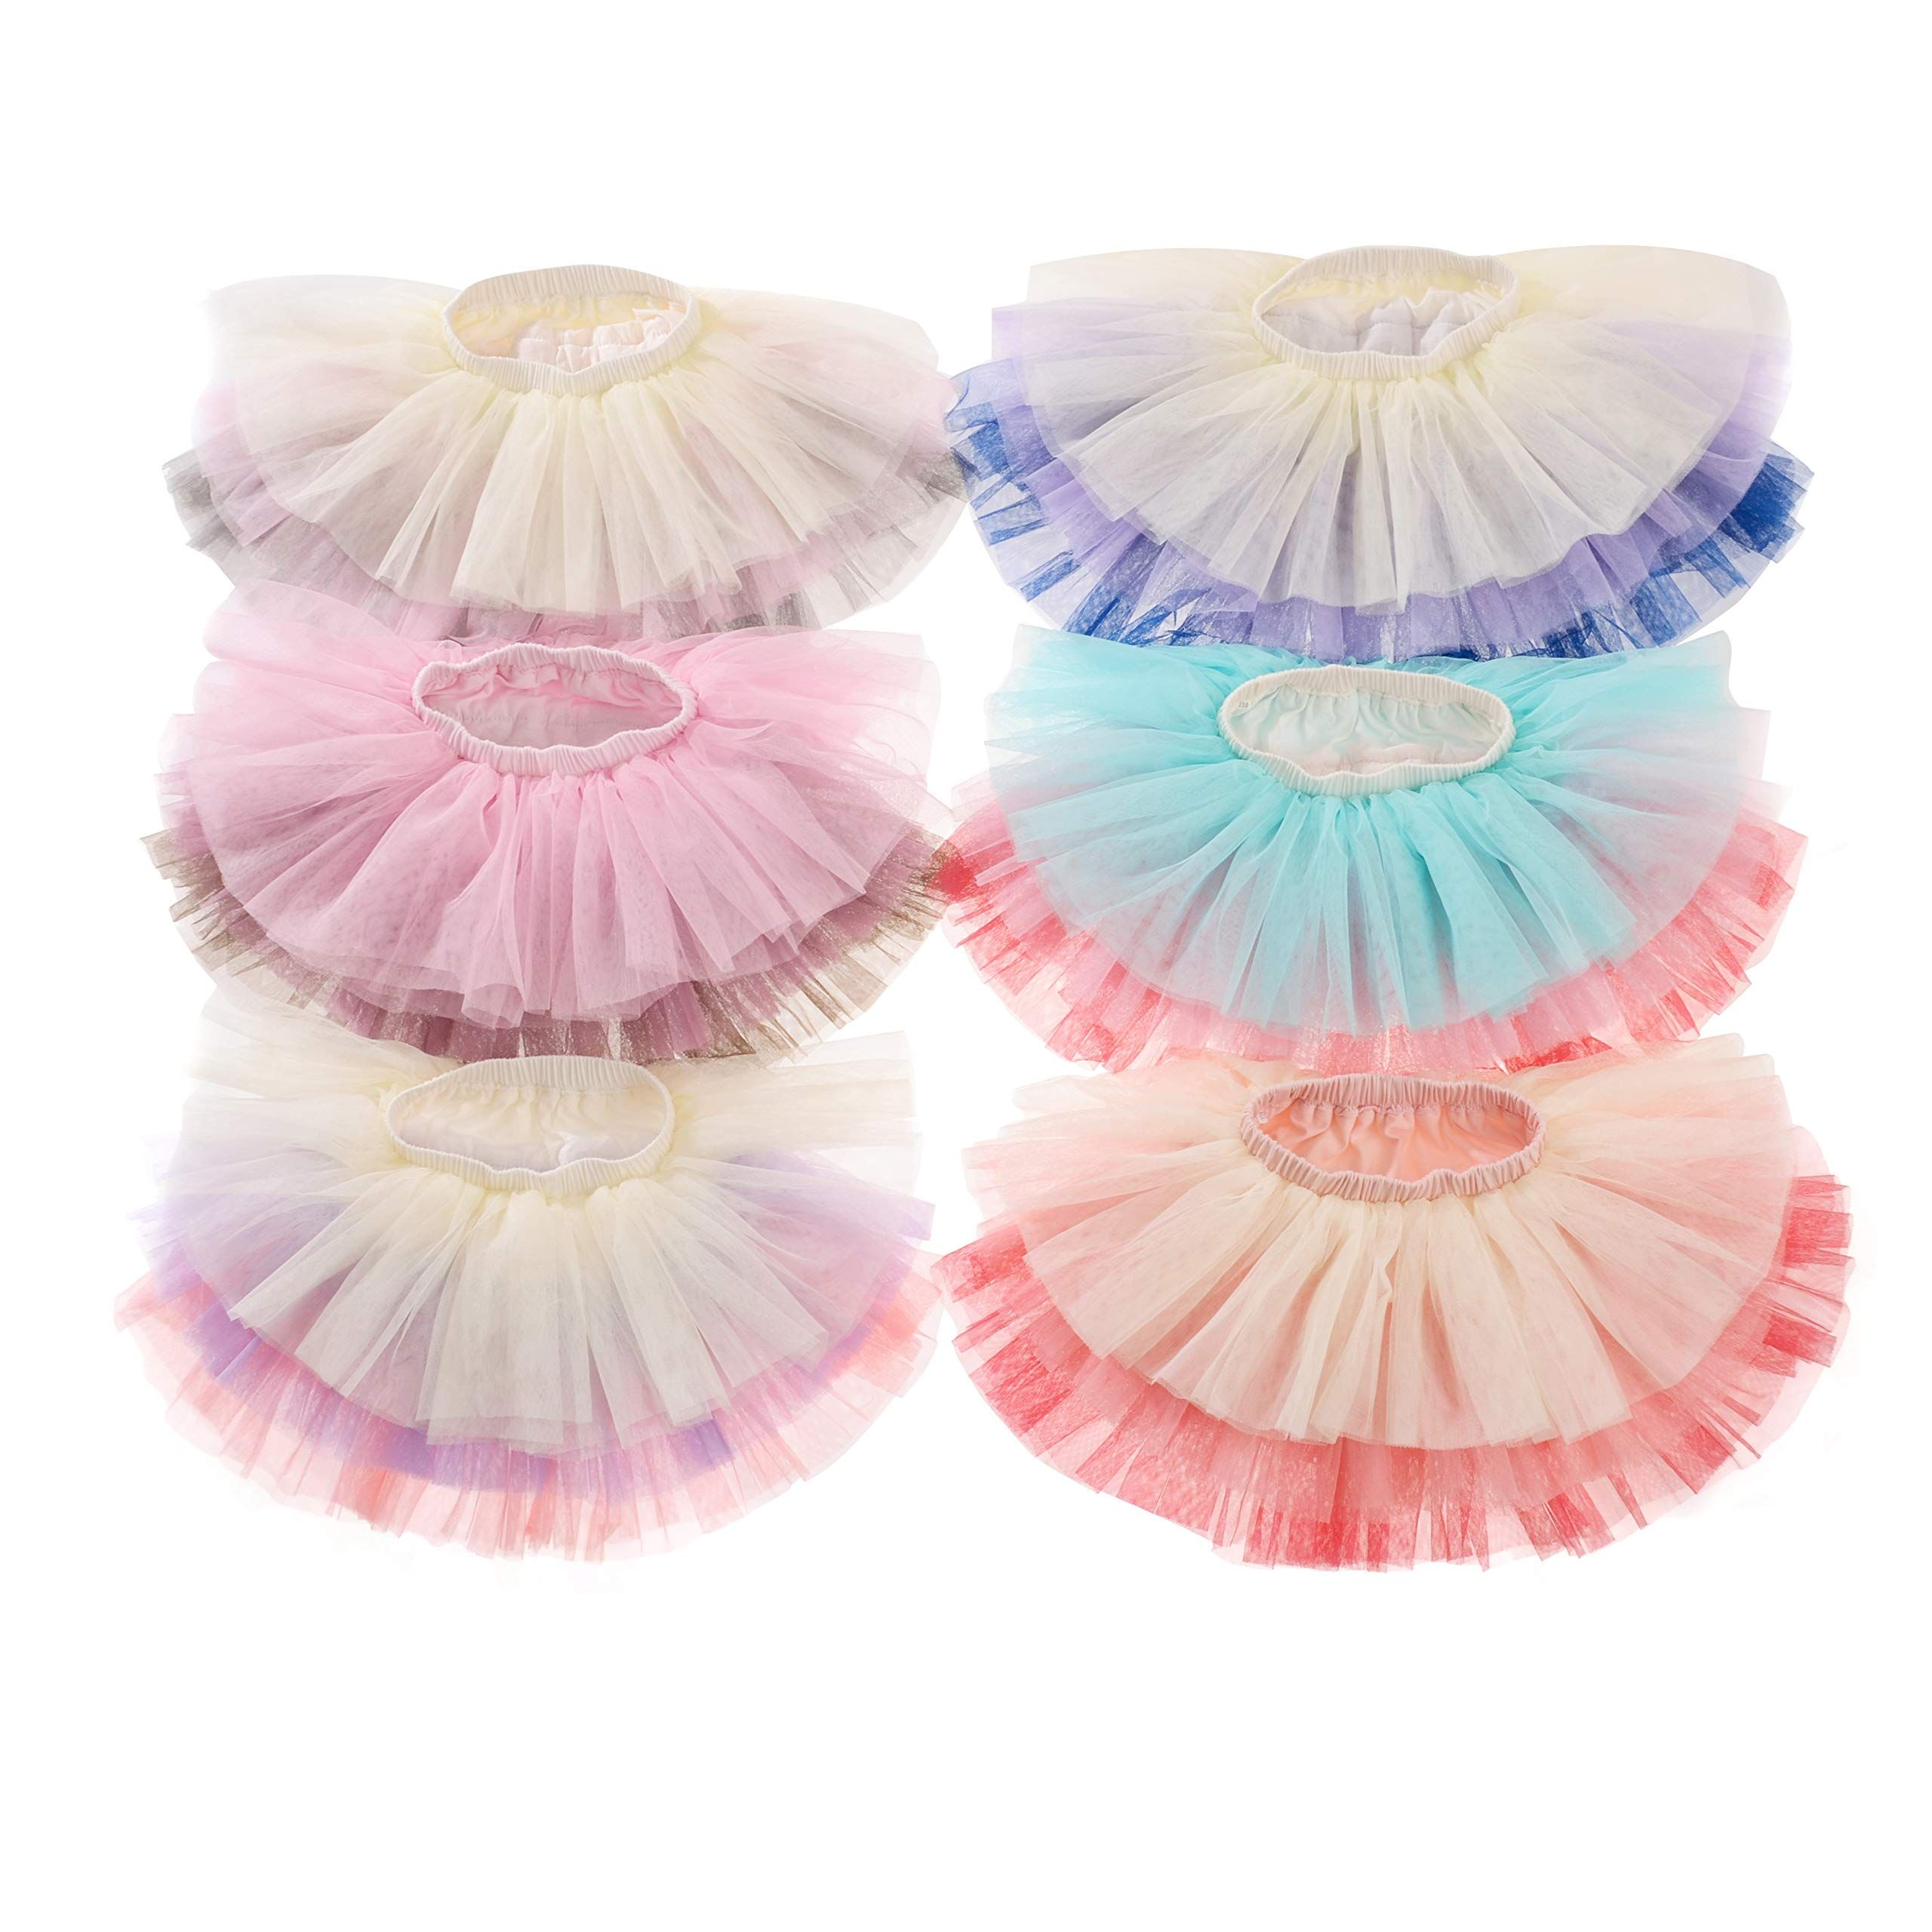 Baby Toddle Girls Rainbow Tutu 6 Layered Fluffy Tulle Ballet Skirt 1-8T